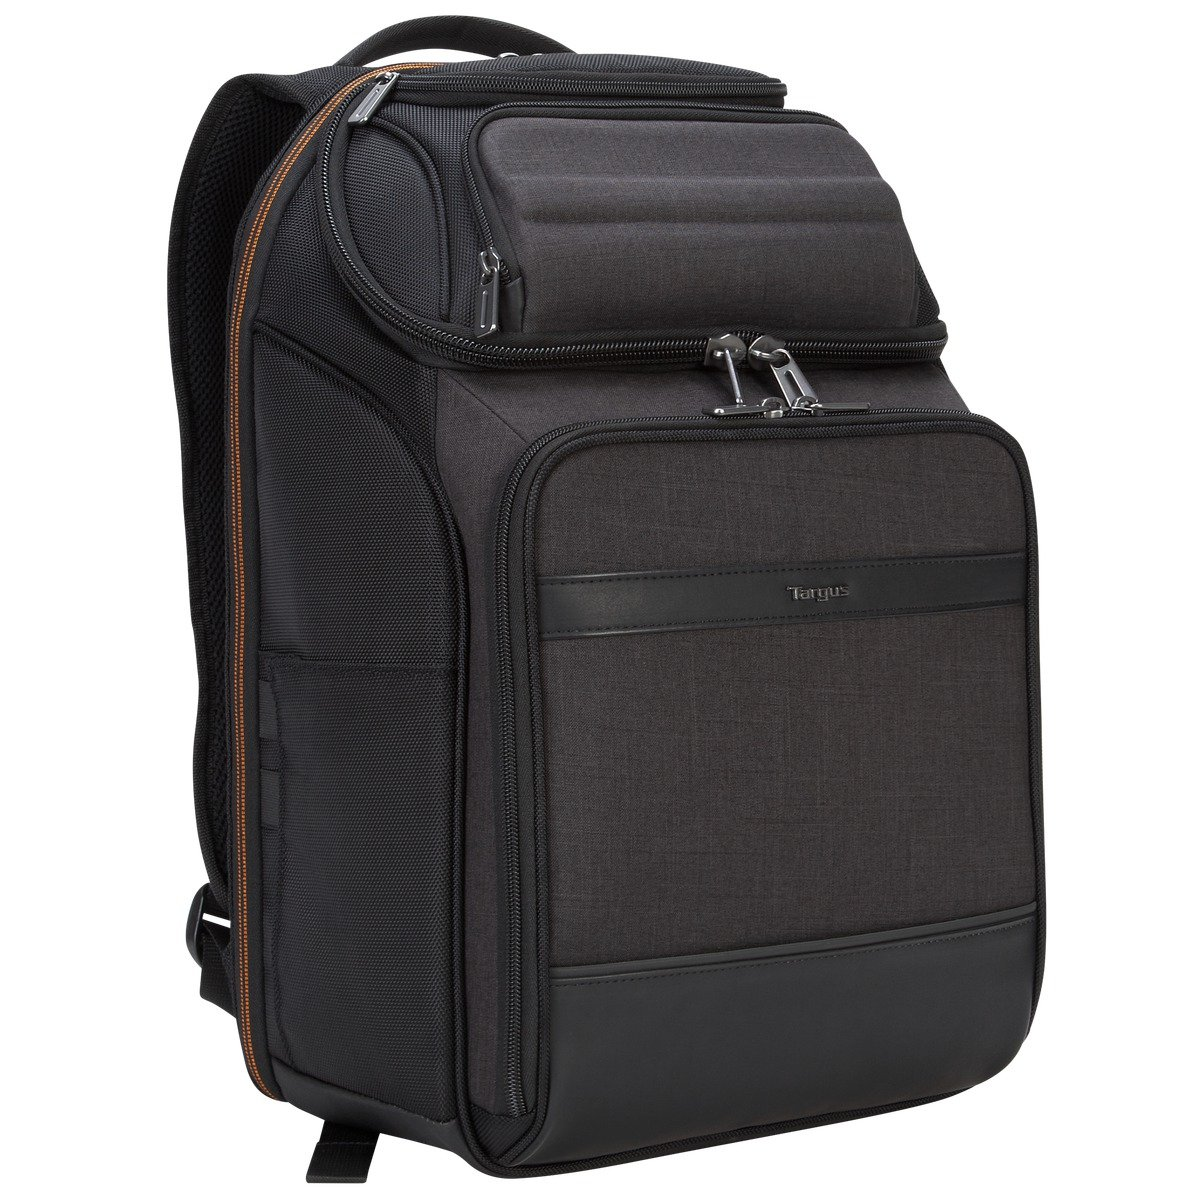 Targus CitySmart EVA Pro Checkpoint-Friendly Backpack for 15.6-Inch Laptop, Gray (TSB895)